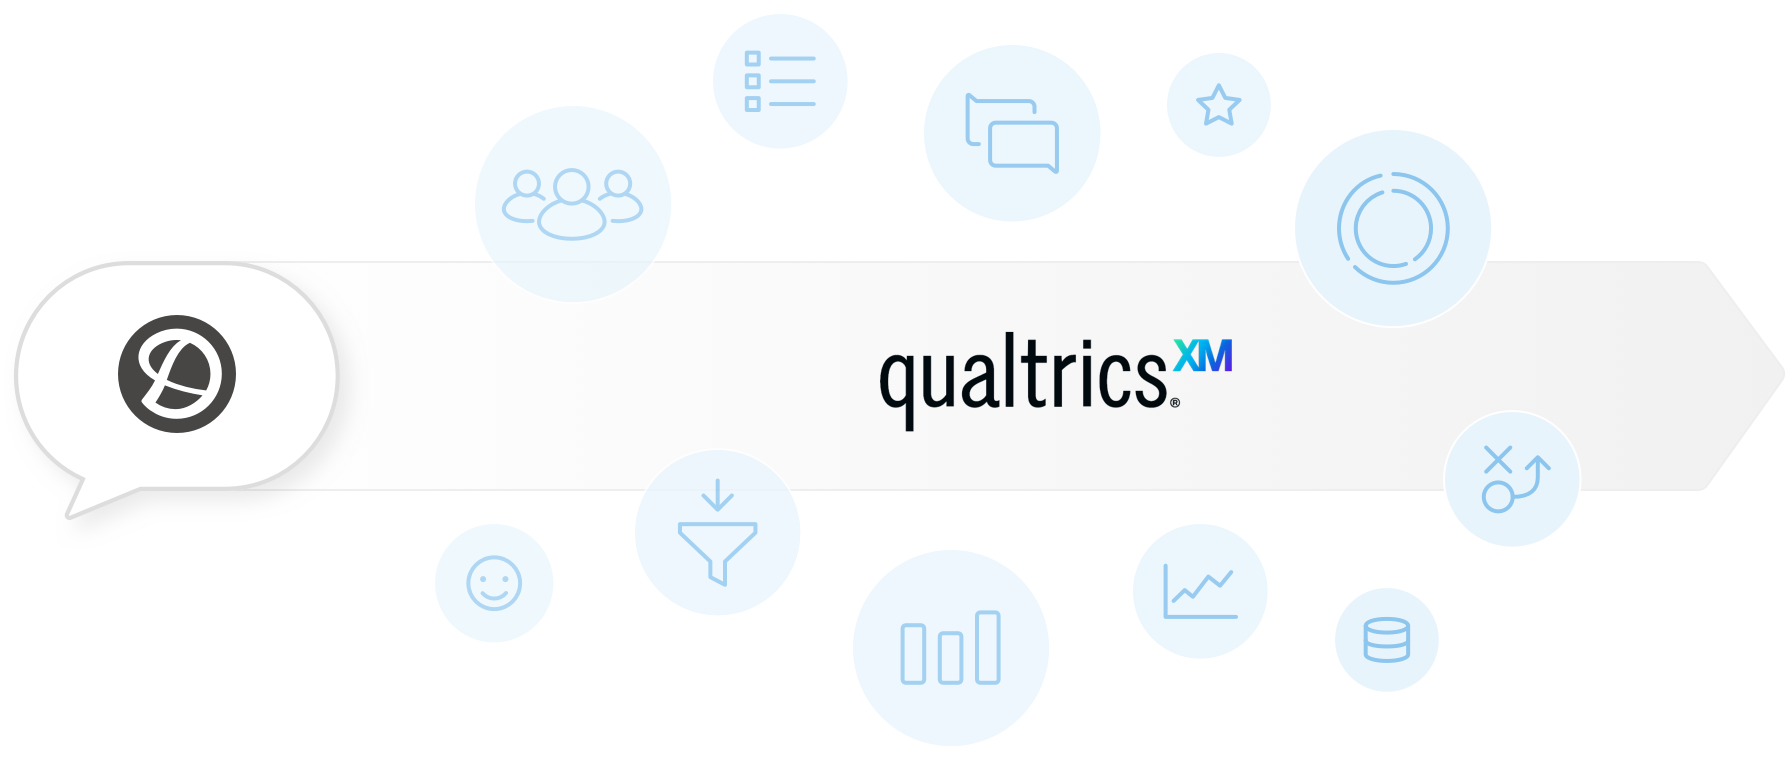 delighted to qualtrics maturity model